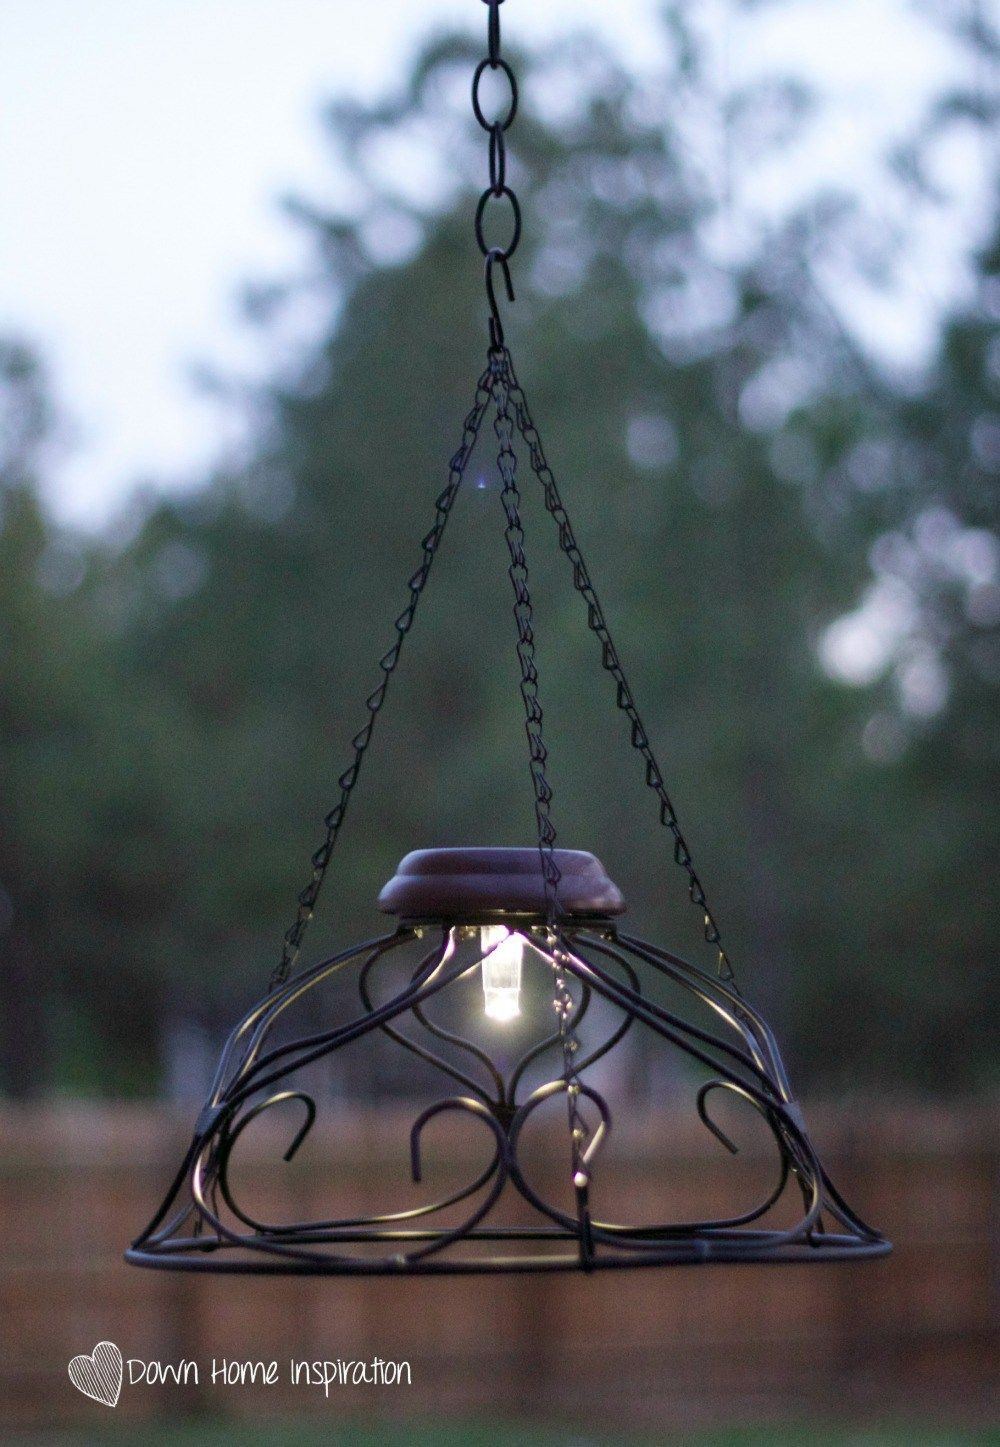 10 and 10 minute solar chandelier solar chandelier on stunning backyard lighting design decor and remodel ideas sources to understand id=30275